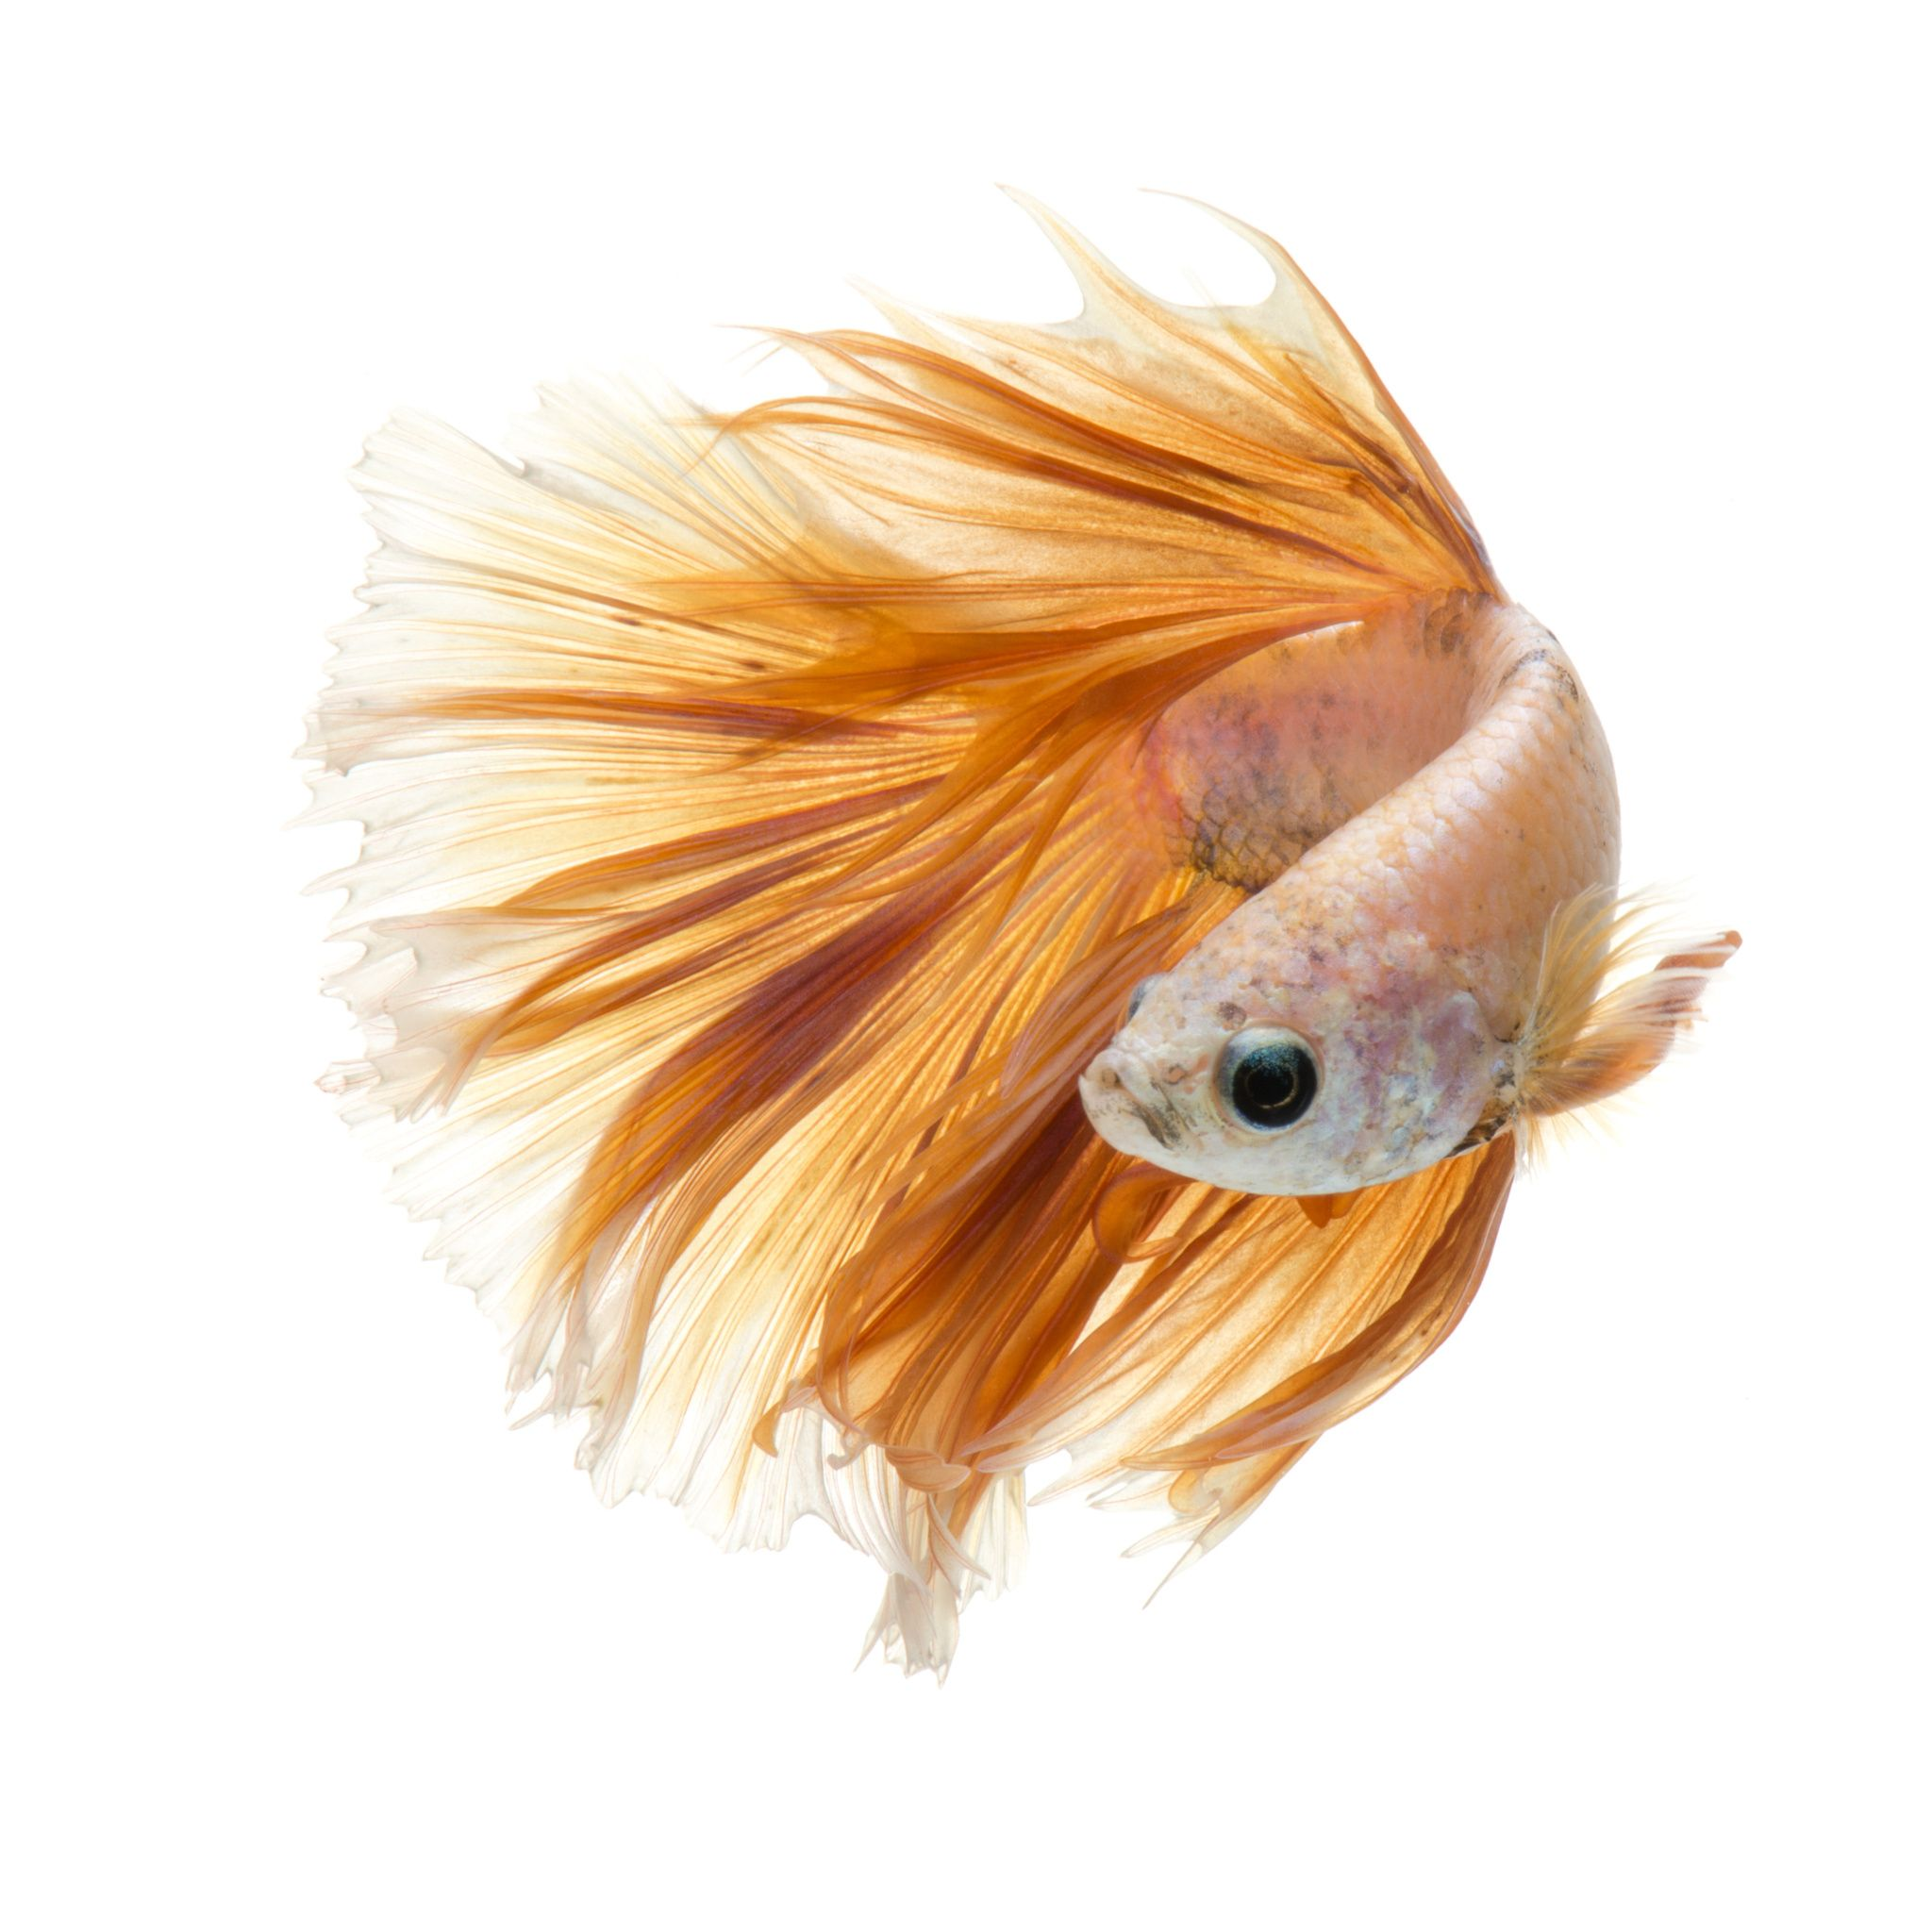 Moon Capture The Moving Moment Of Peach Color Siamese Fighting Fish Isolated On White Background Betta Fish Fish Of Betta Fish Siamese Fighting Fish Betta